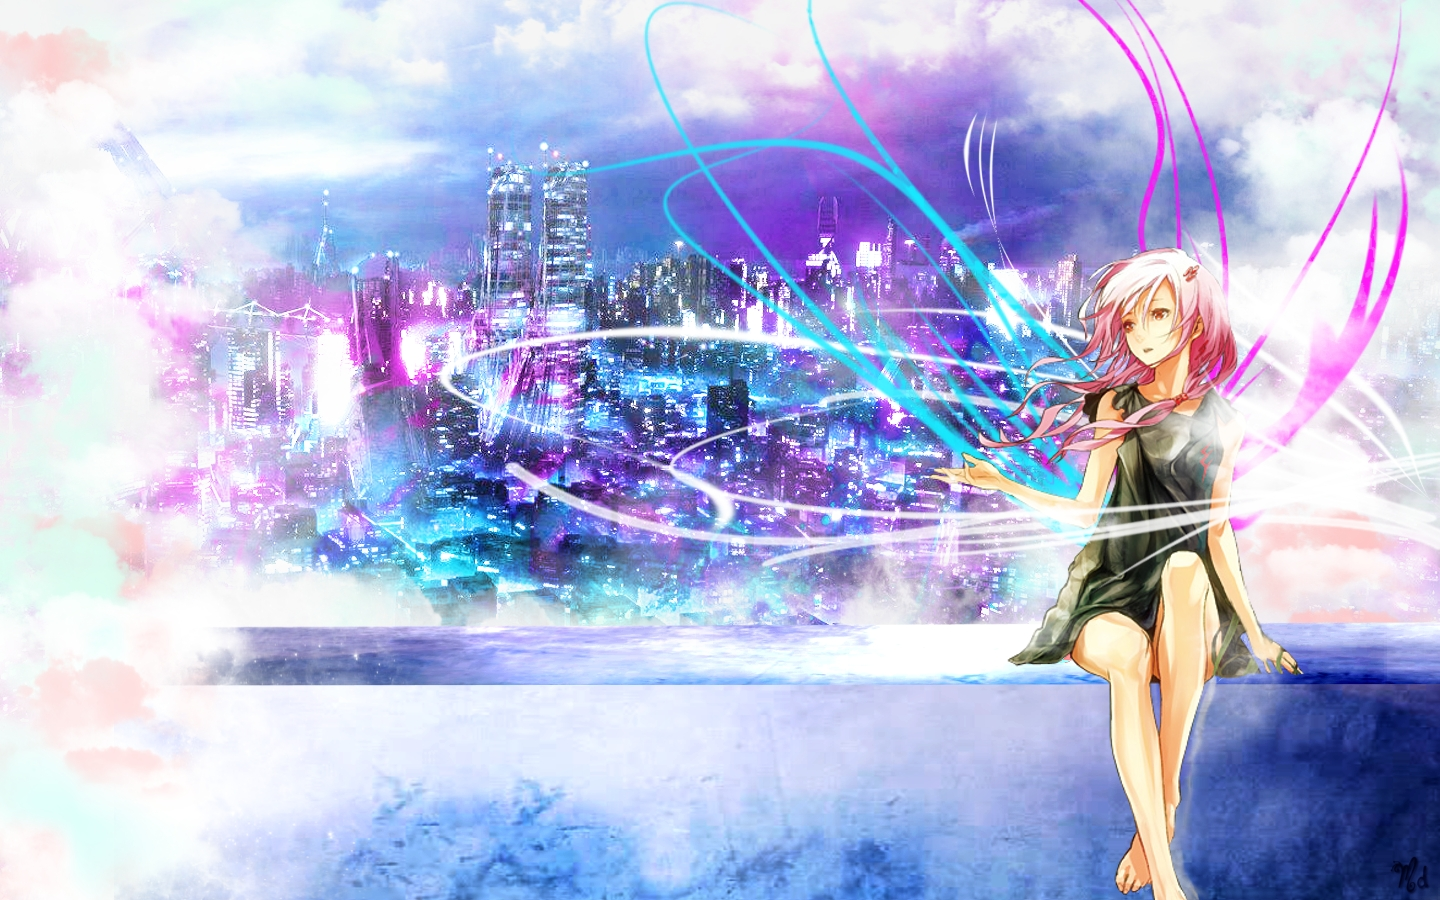 Guilty Crown Wallpaper Inori: Wallpaper #905496